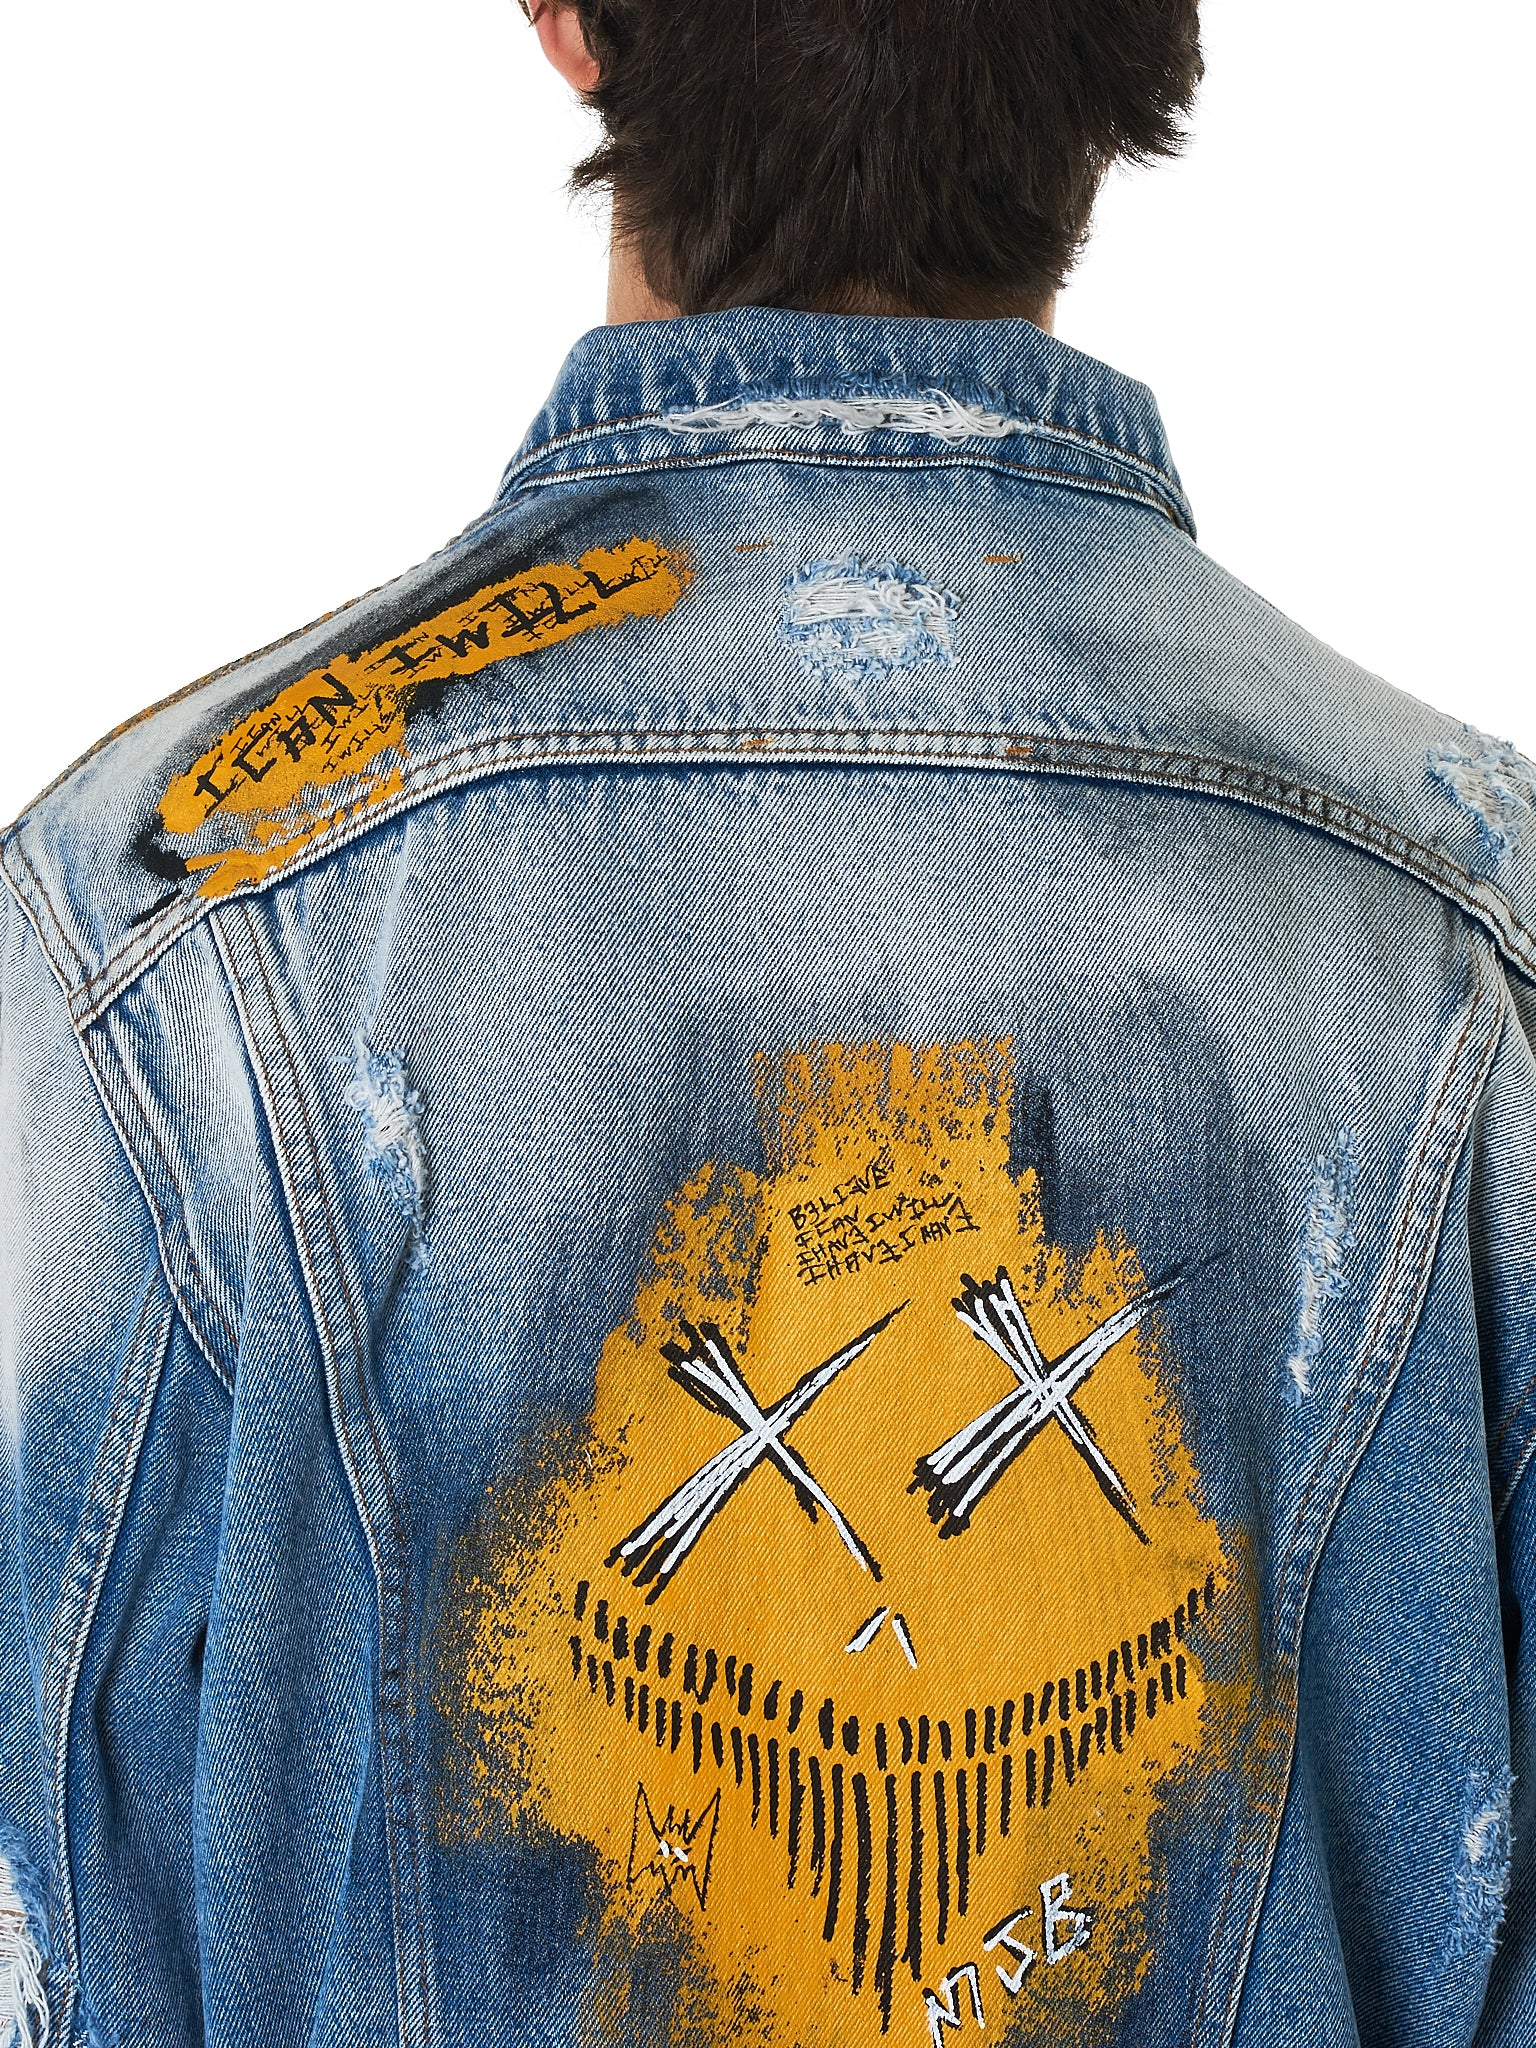 MJB (Marc Jacques Burton) Denim Jacket - Hlorenzo Detail 2